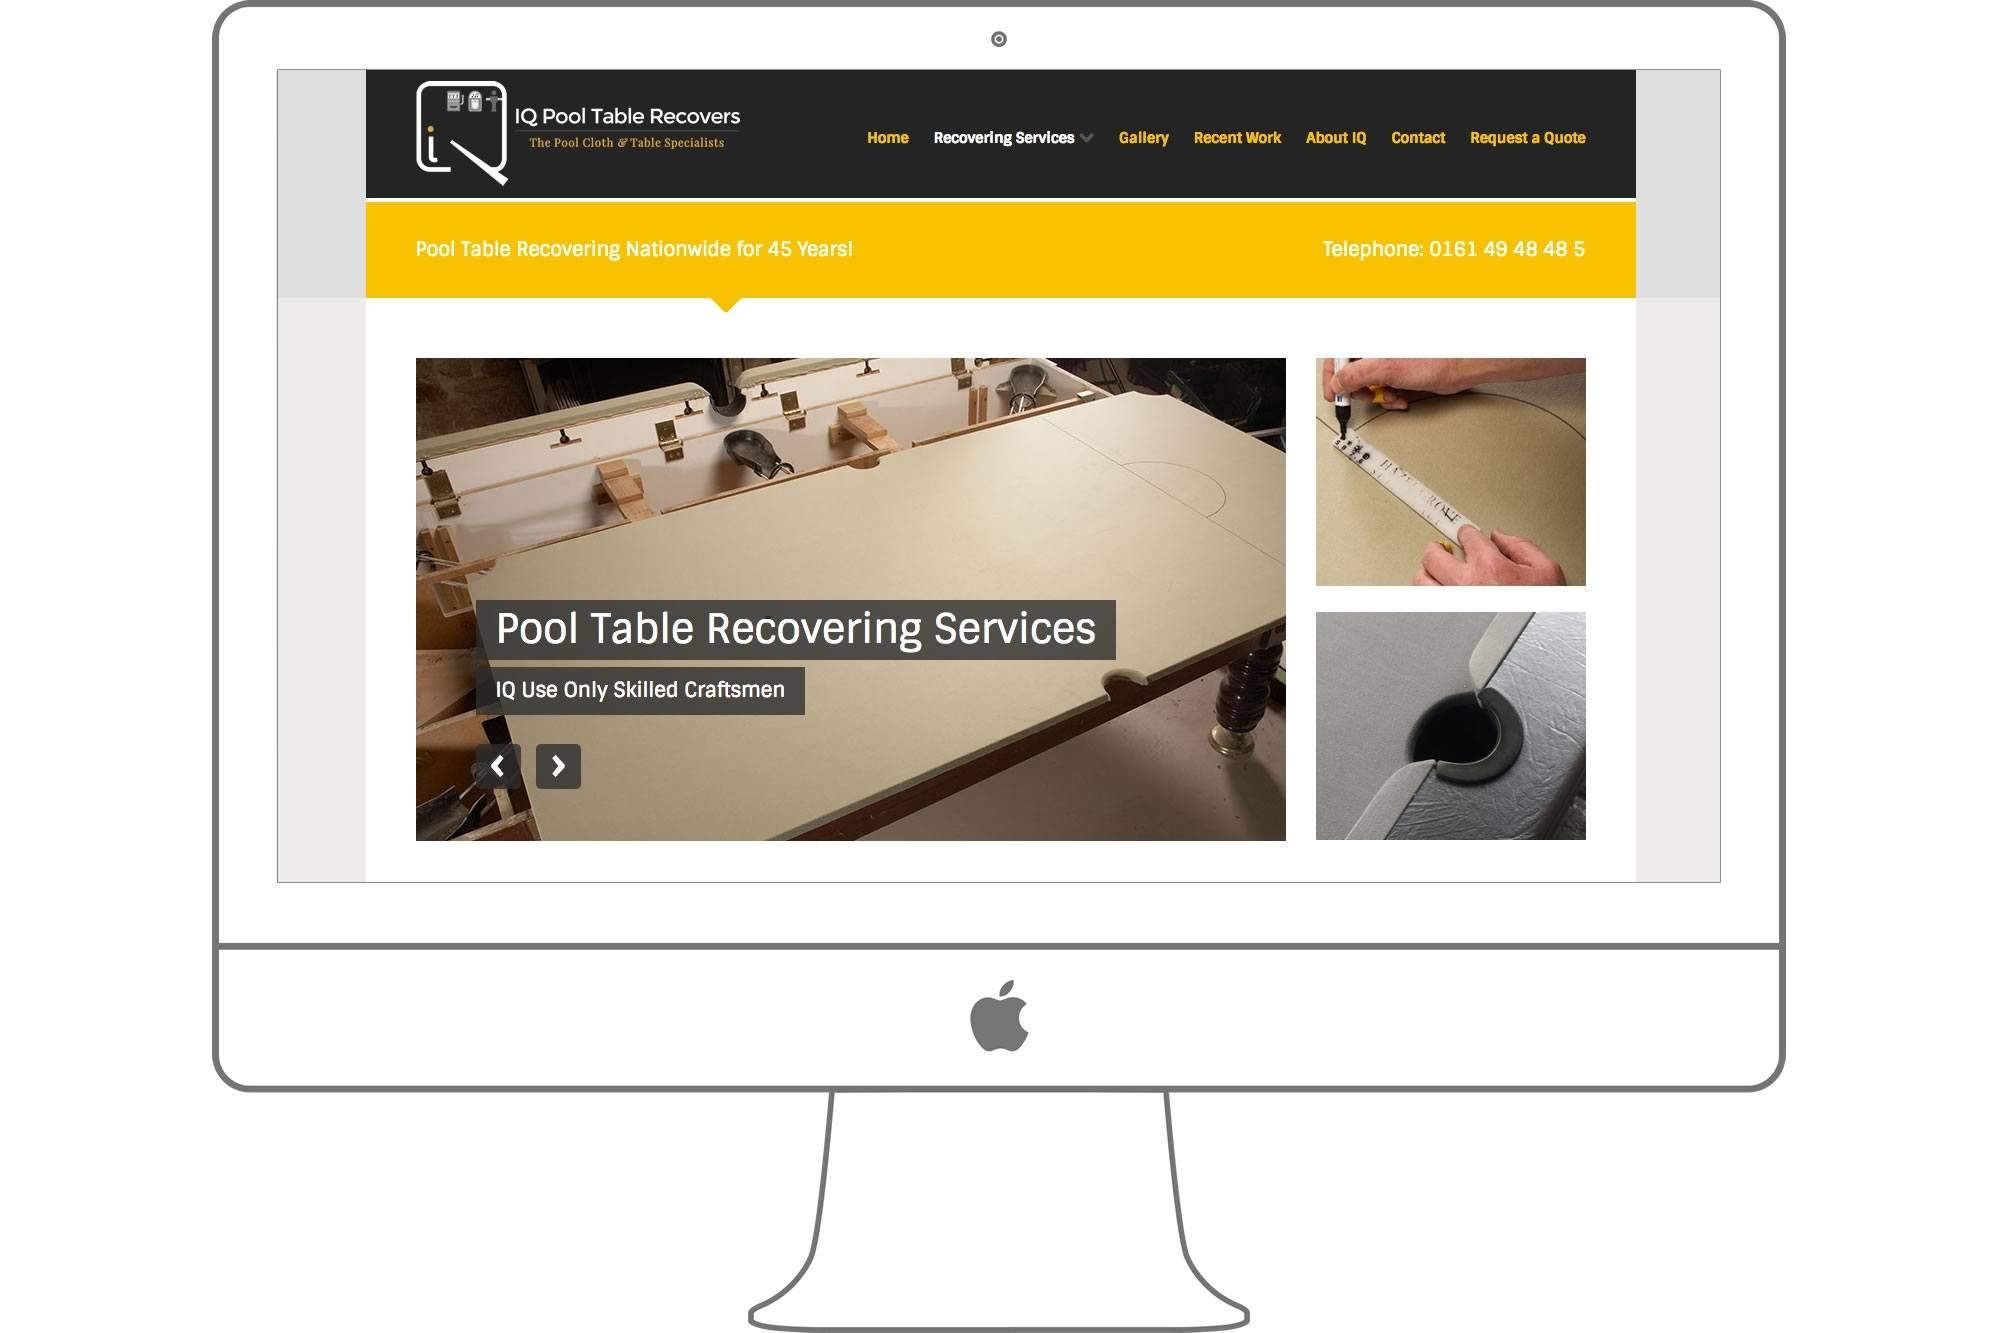 IQ Pool Table Recovers Website by Big Decision